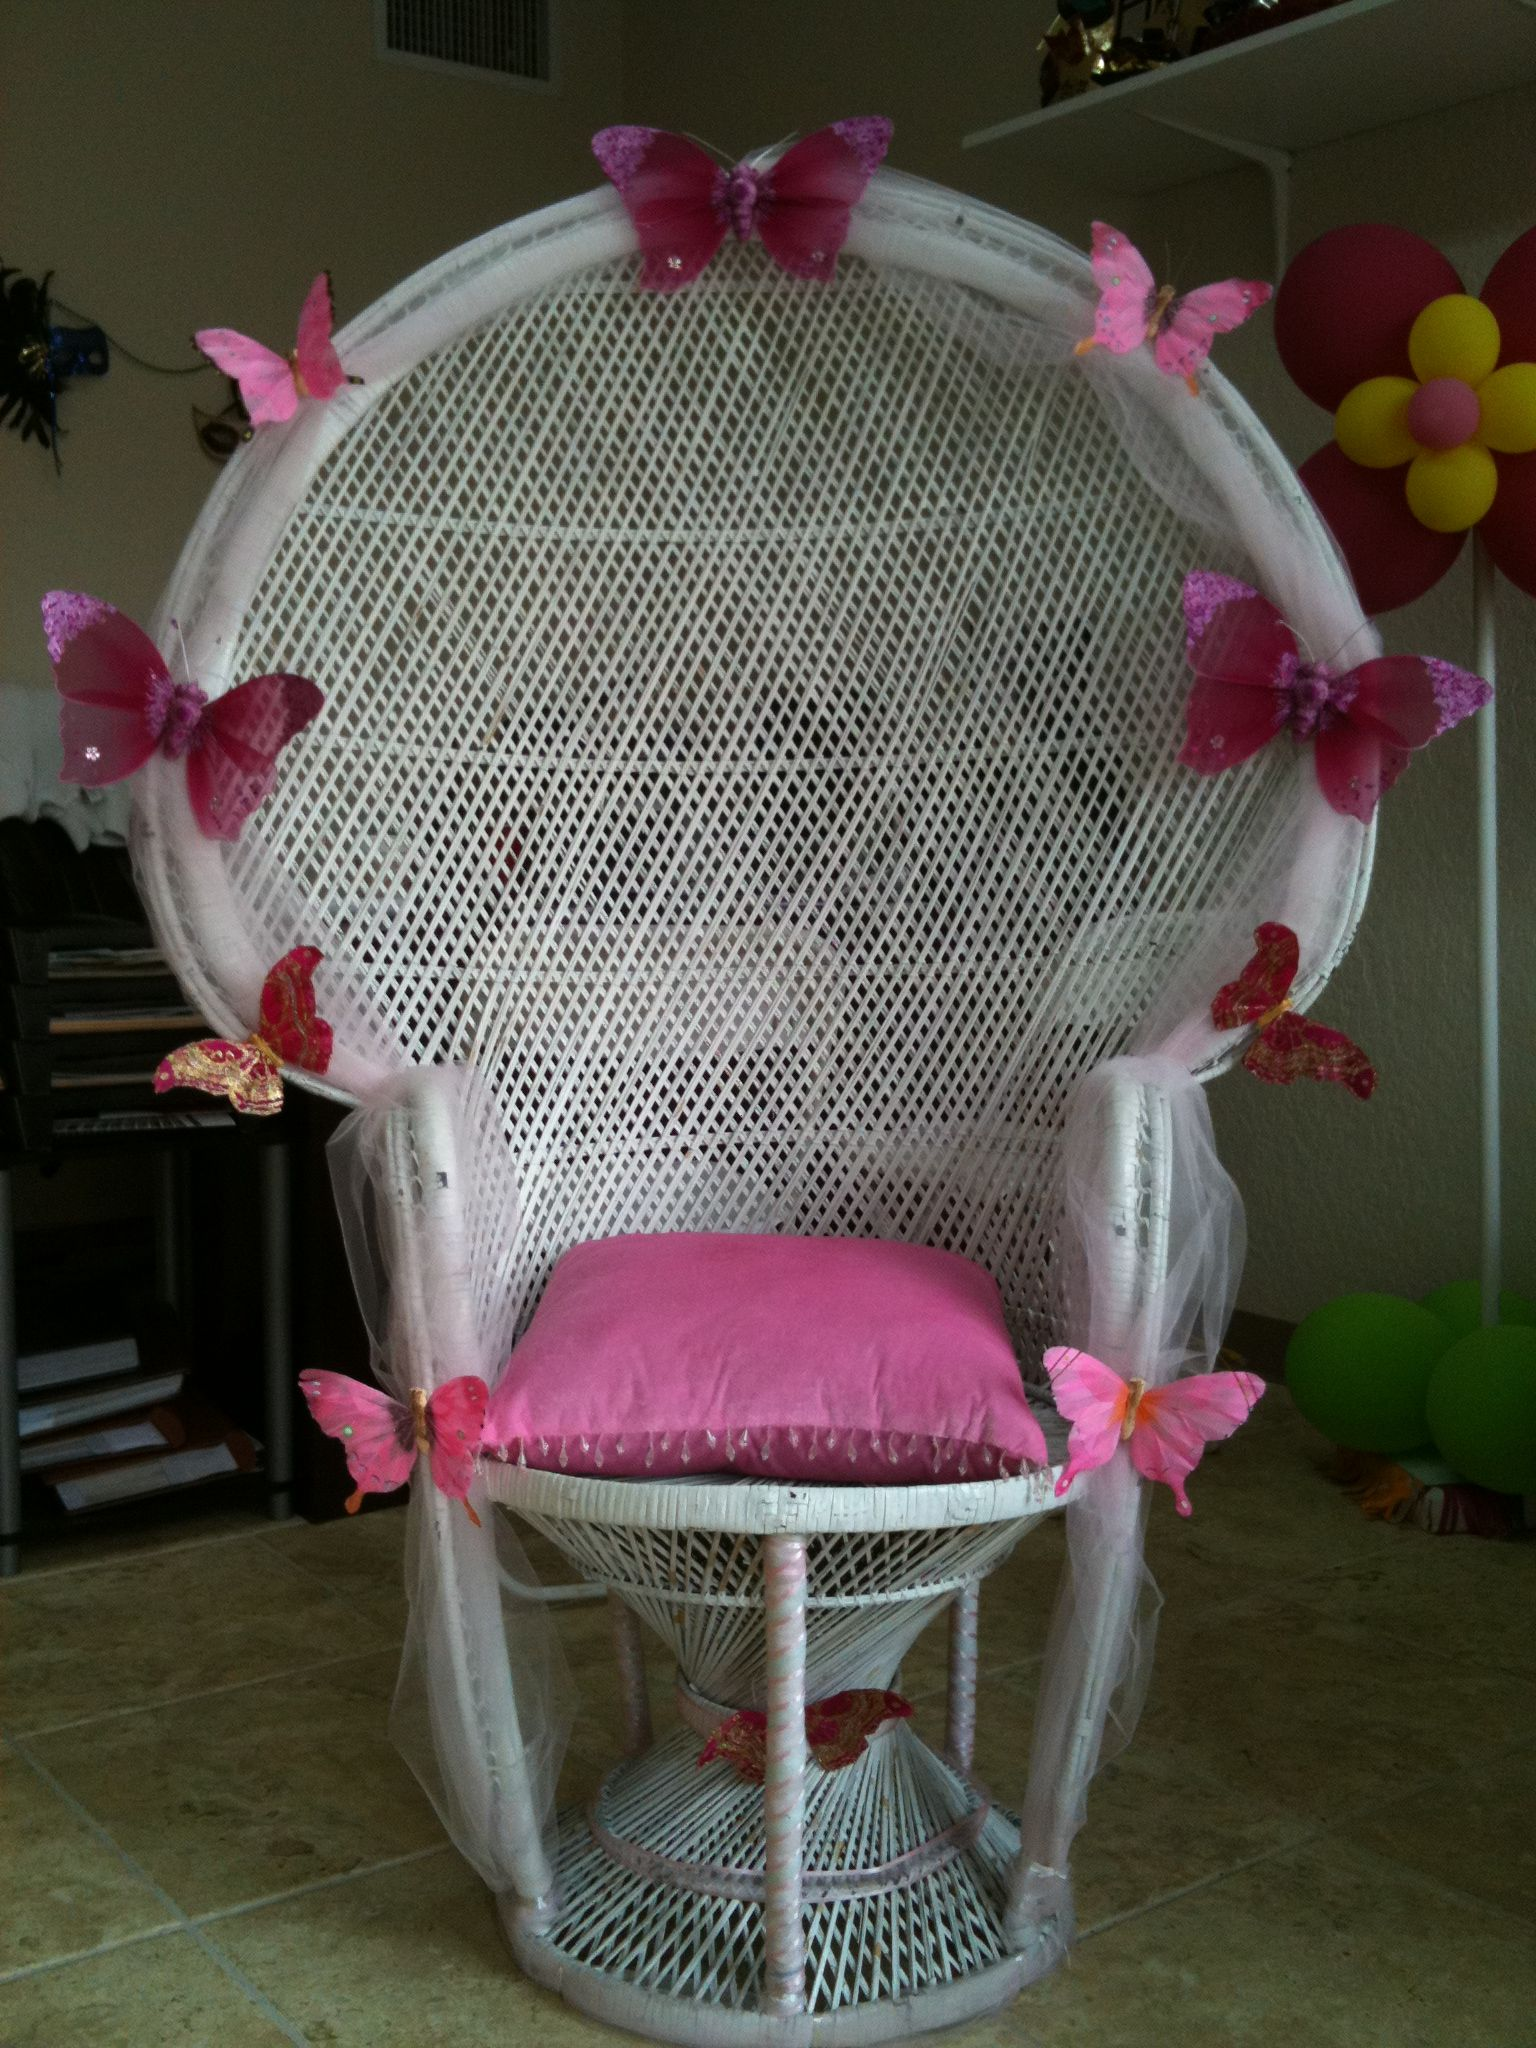 posh baby shower ideas on pinterest baby showers girl baby